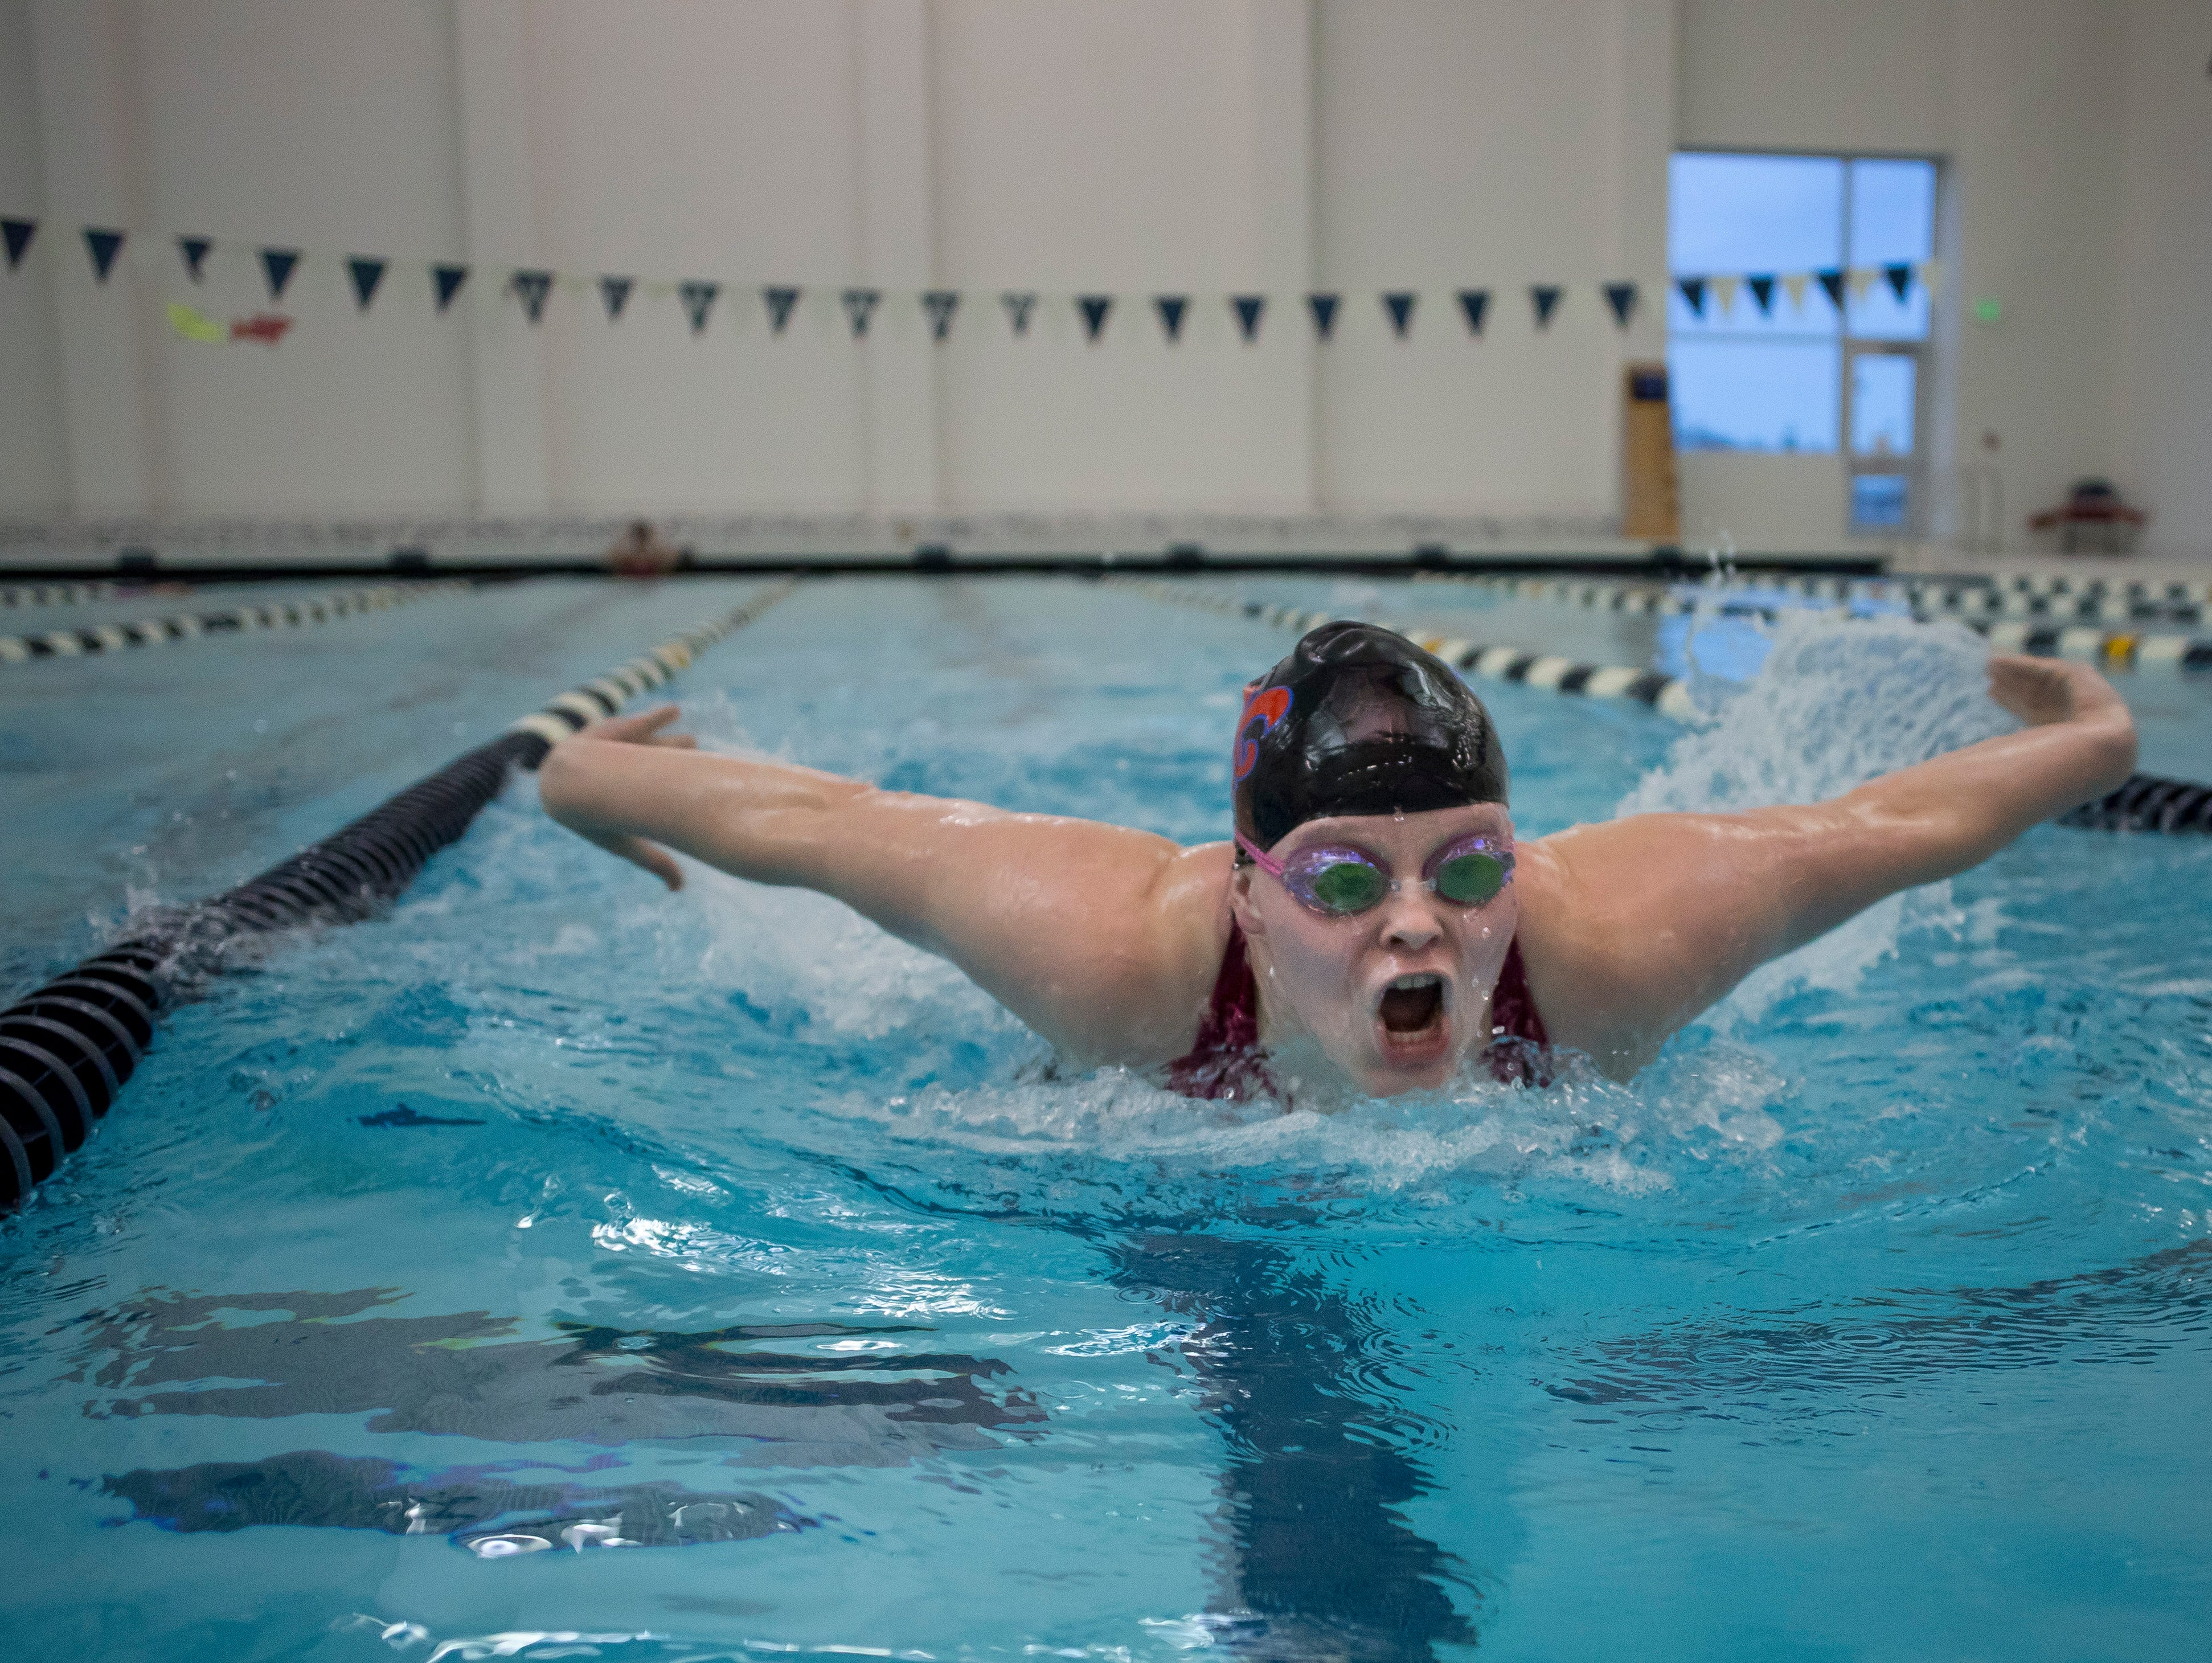 St. Clair senior Alexis Smith does the butterfly stroke during practice Wednesday, November 18, 2015 in Marysville.